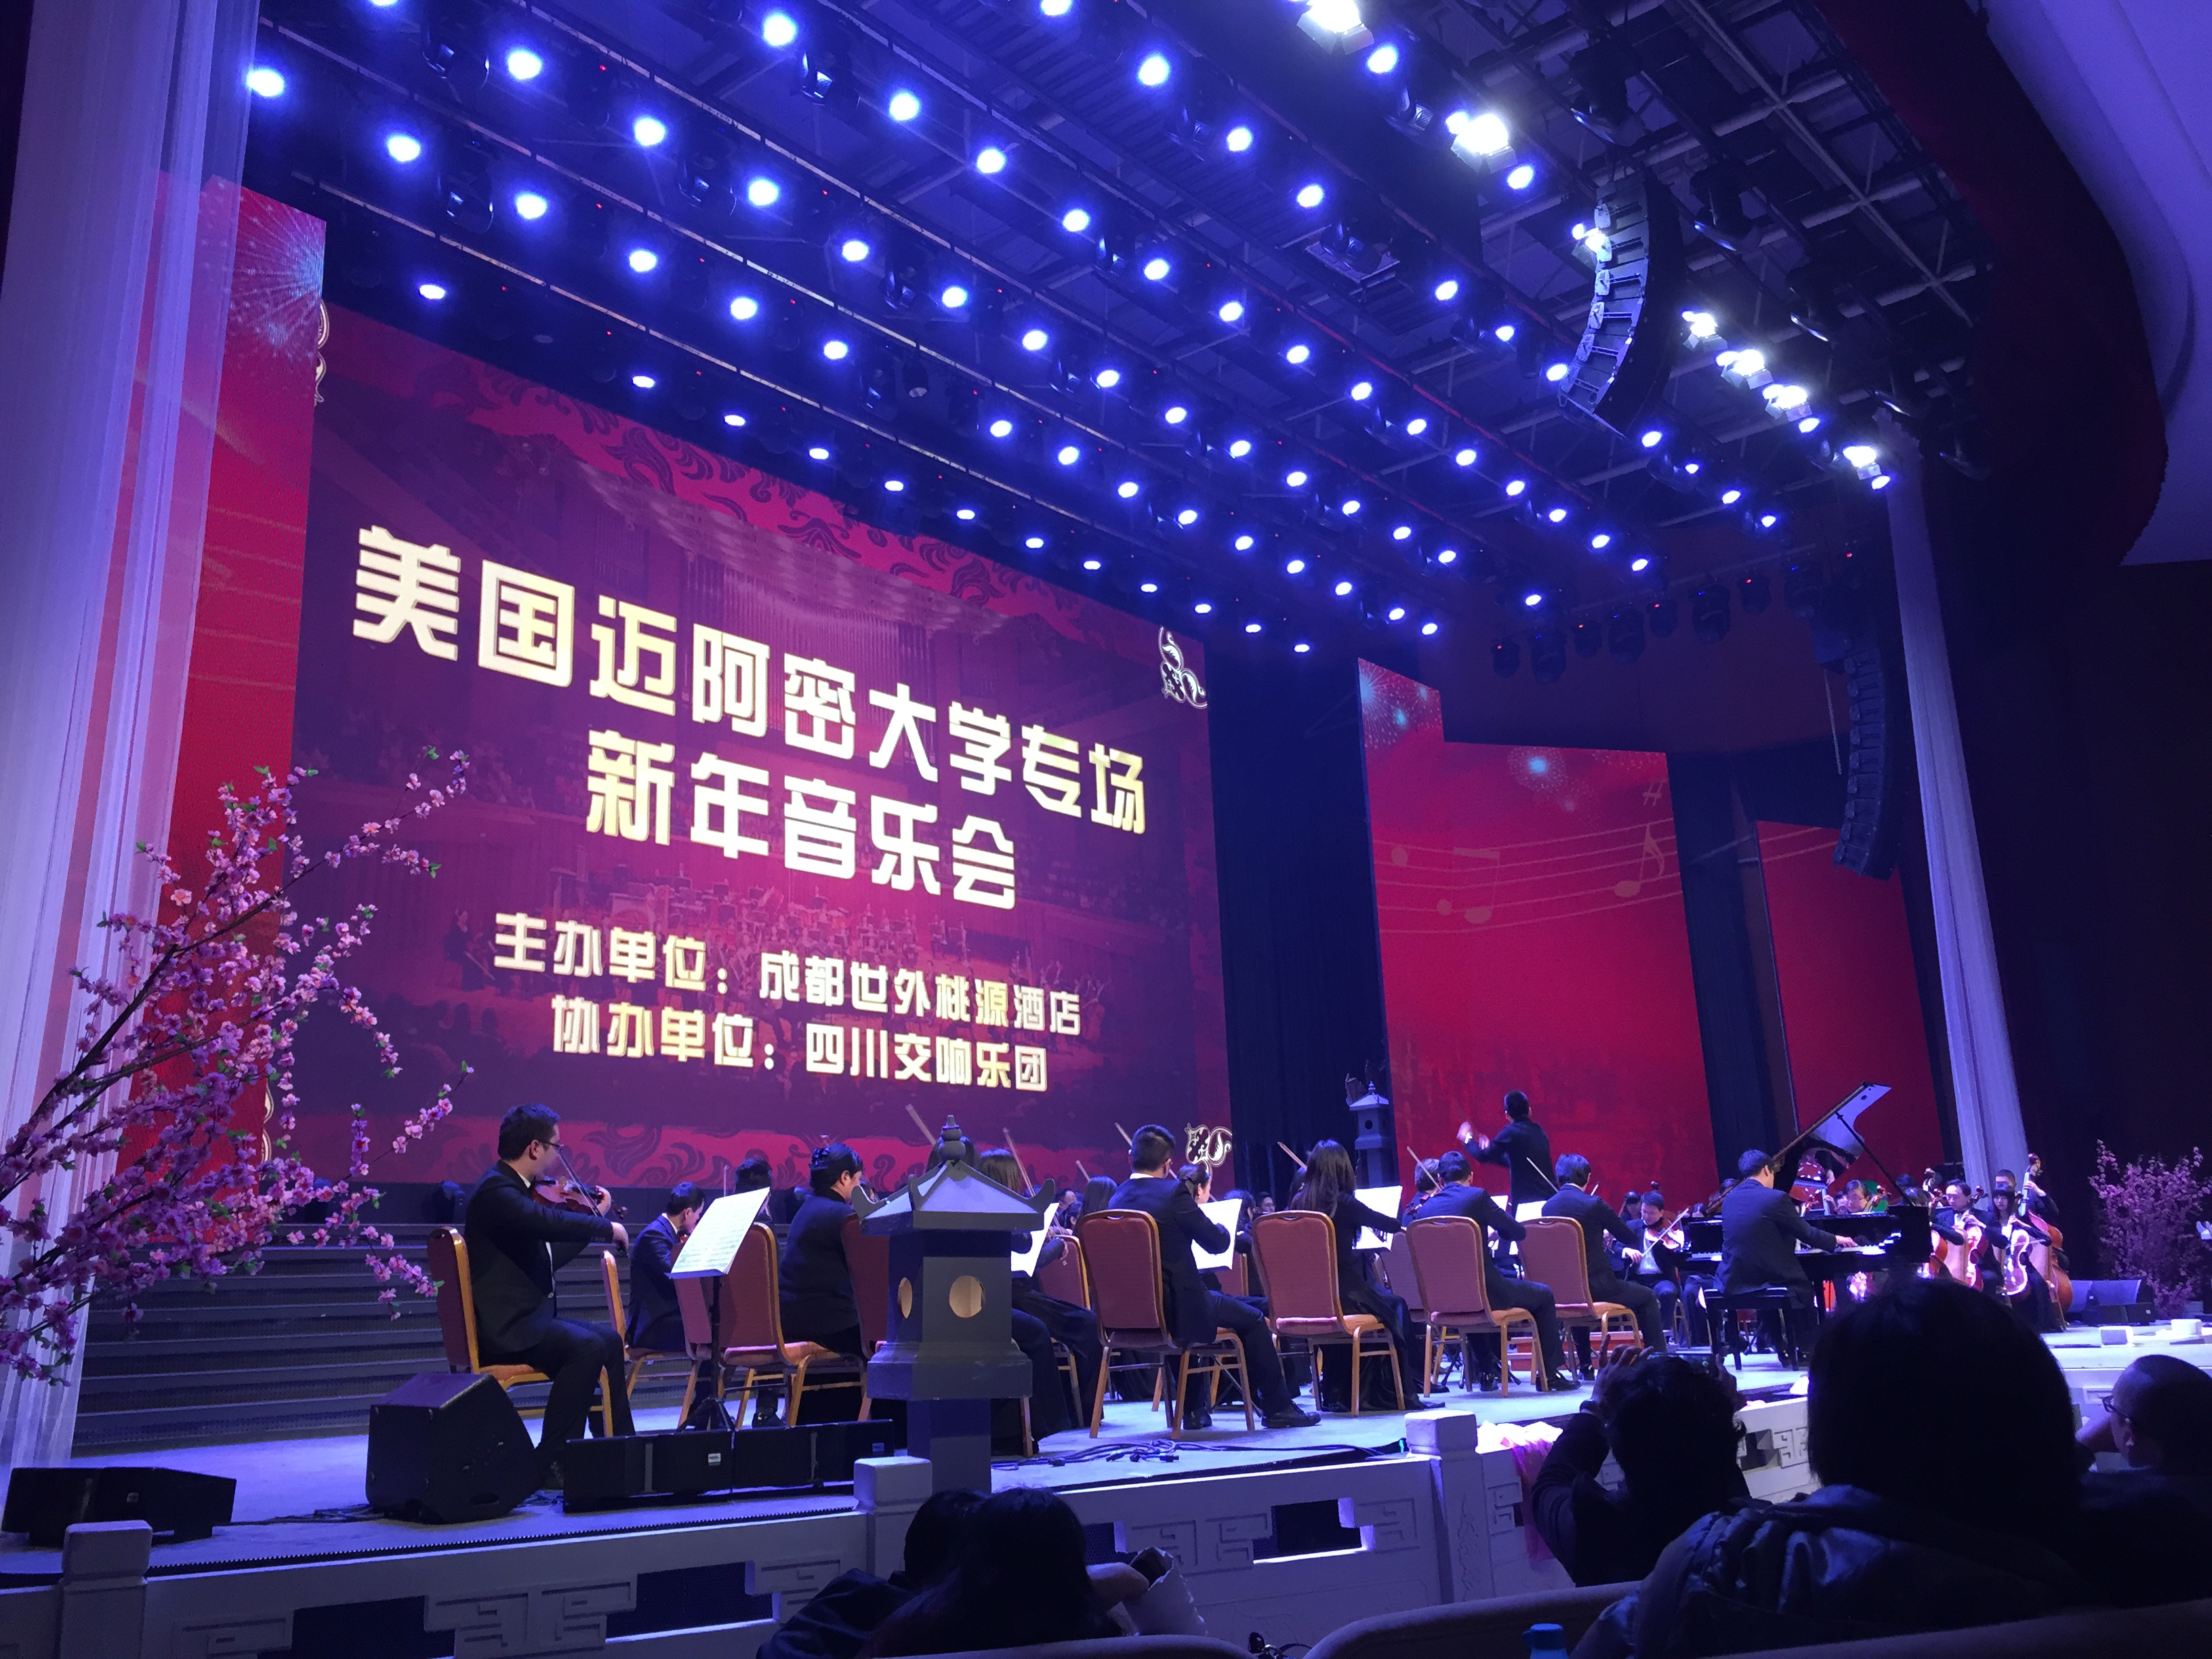 Performance with Sichuan Symphony